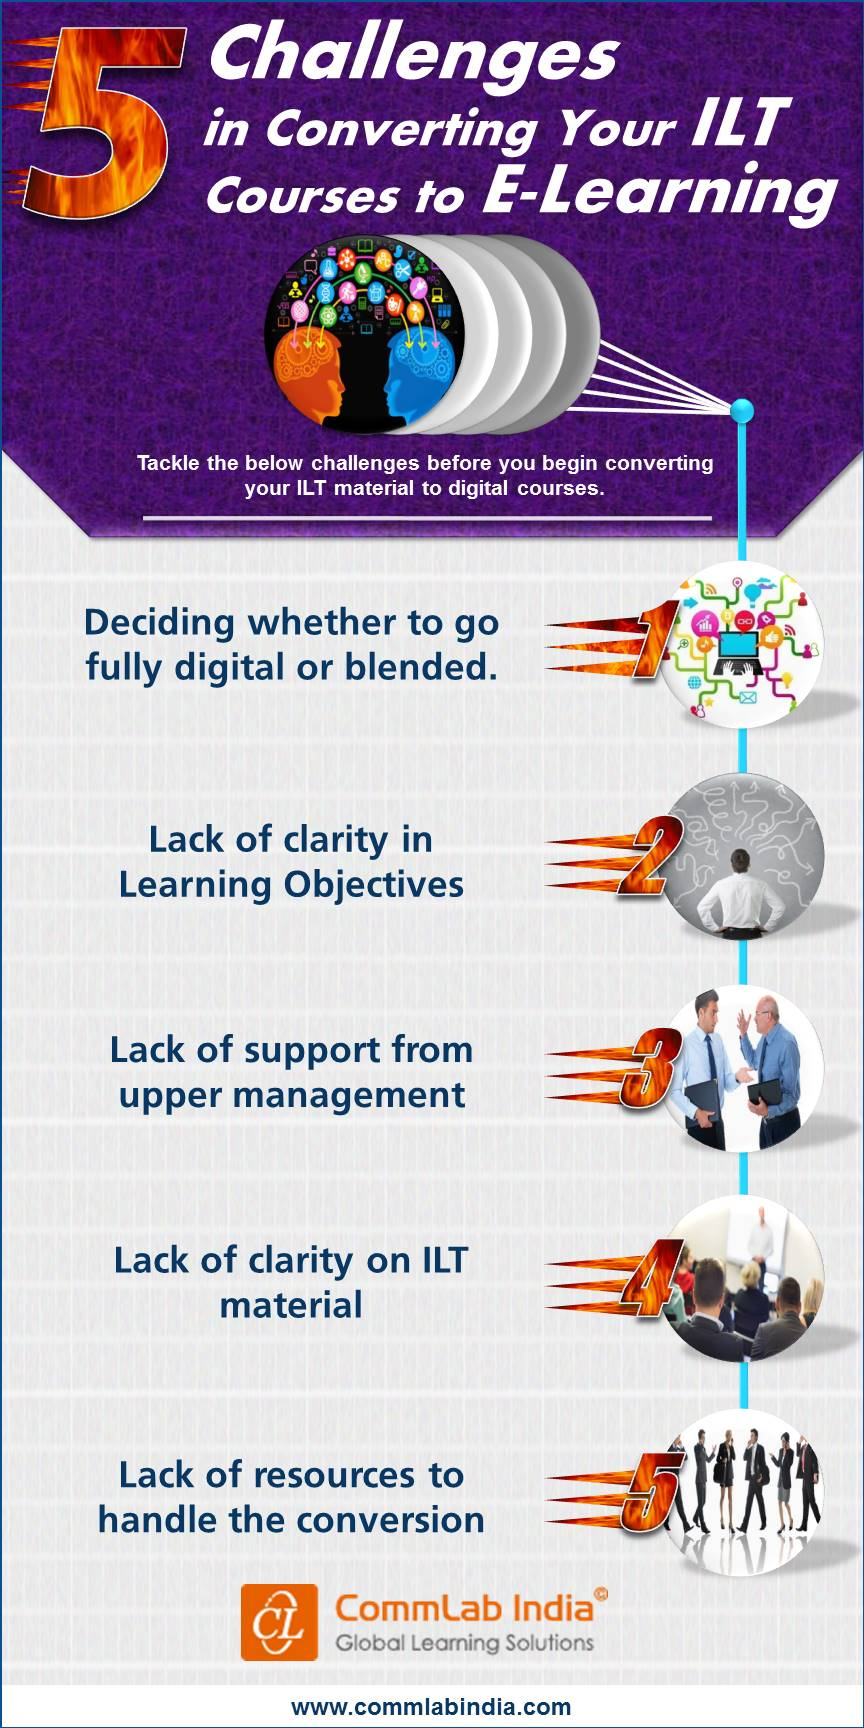 Challenges in Converting Your ILT Courses to E-Learning [Infographic]